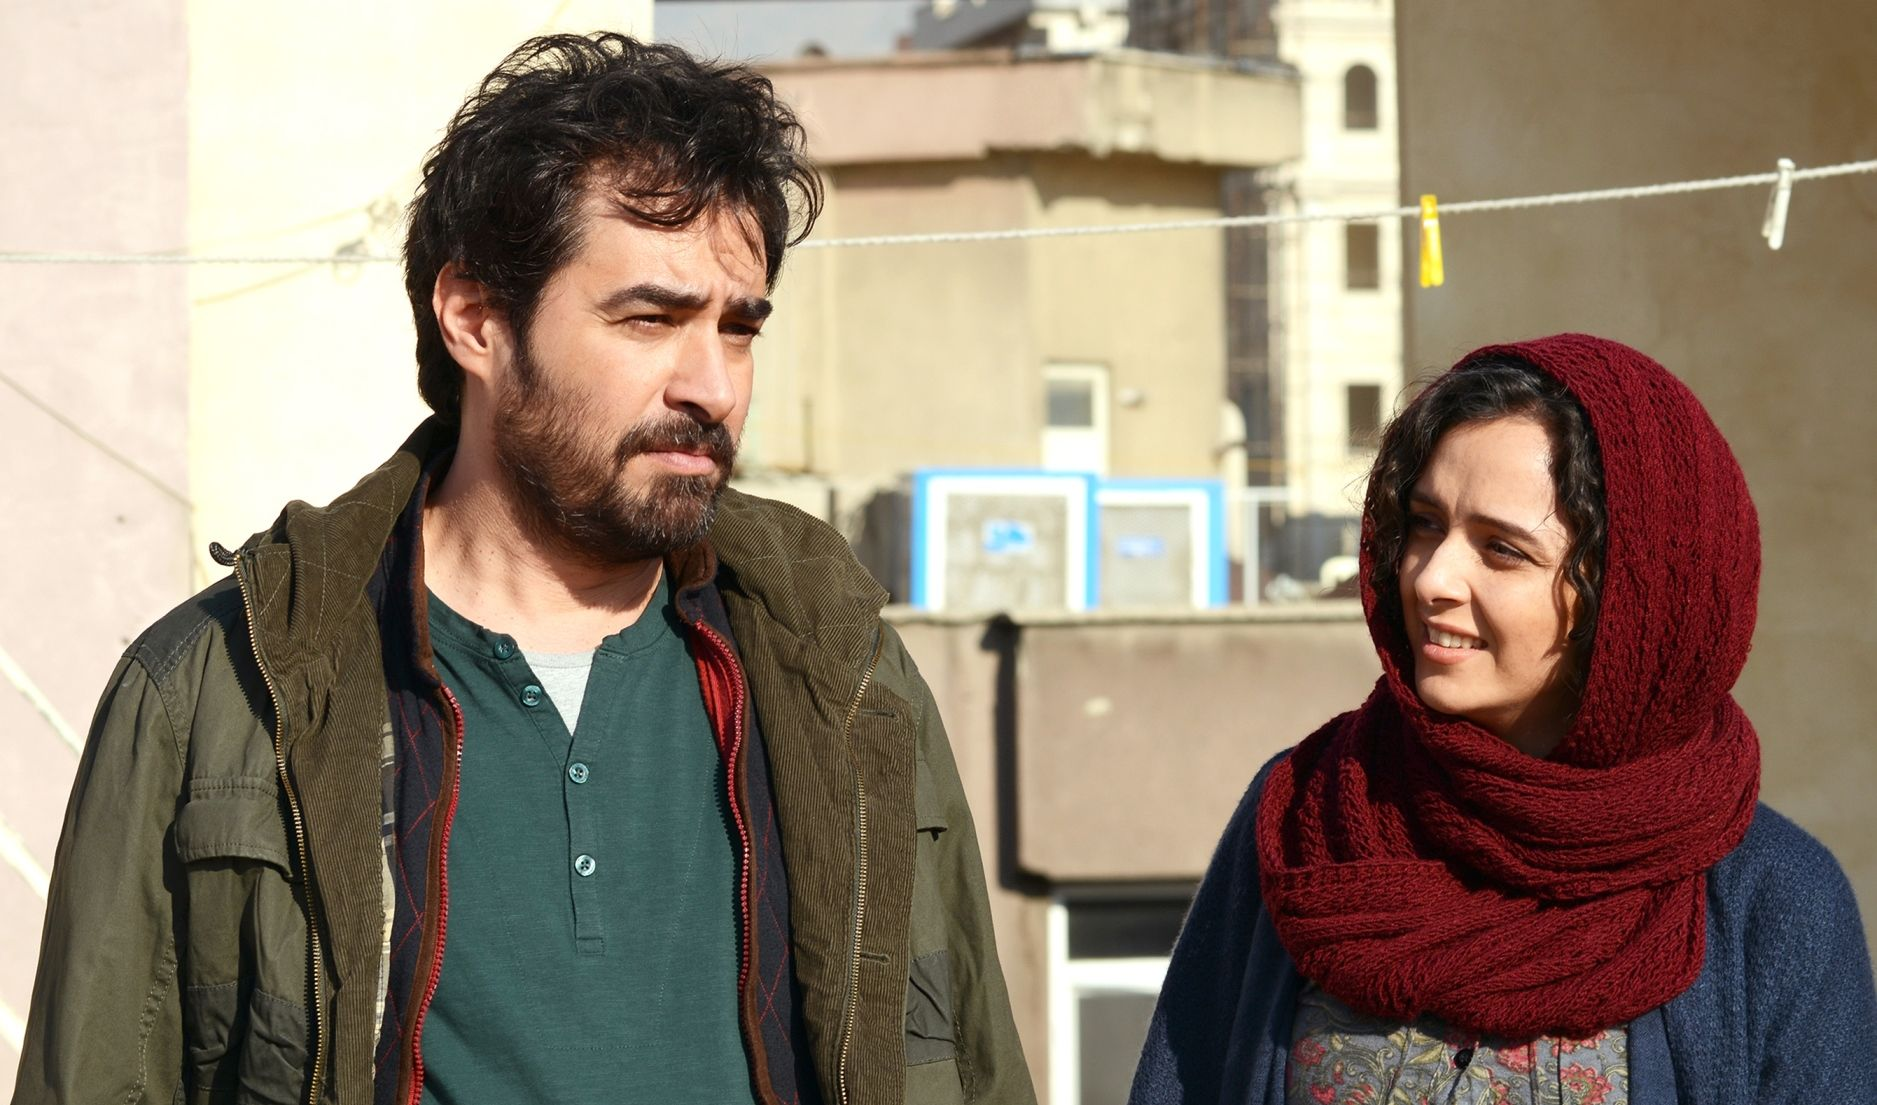 'The Salesman' is a challenging look at a strained relationship